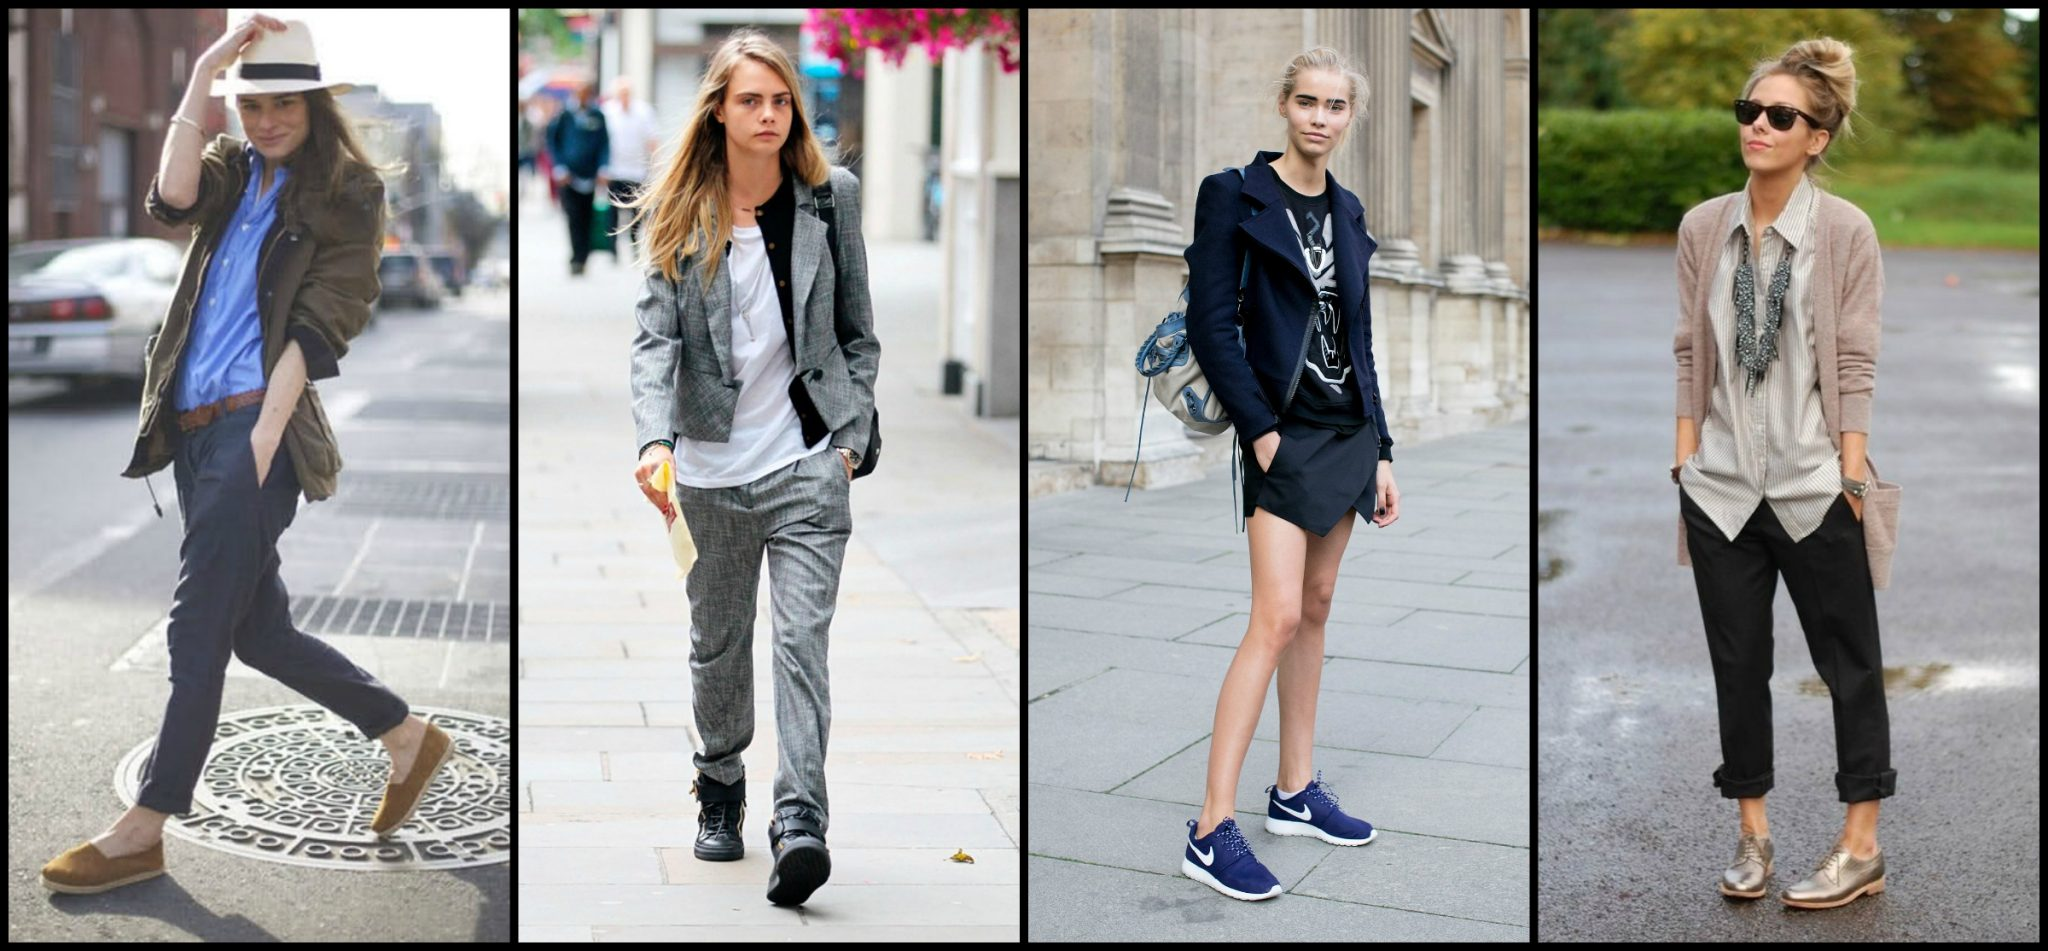 models sporting the tomboy look